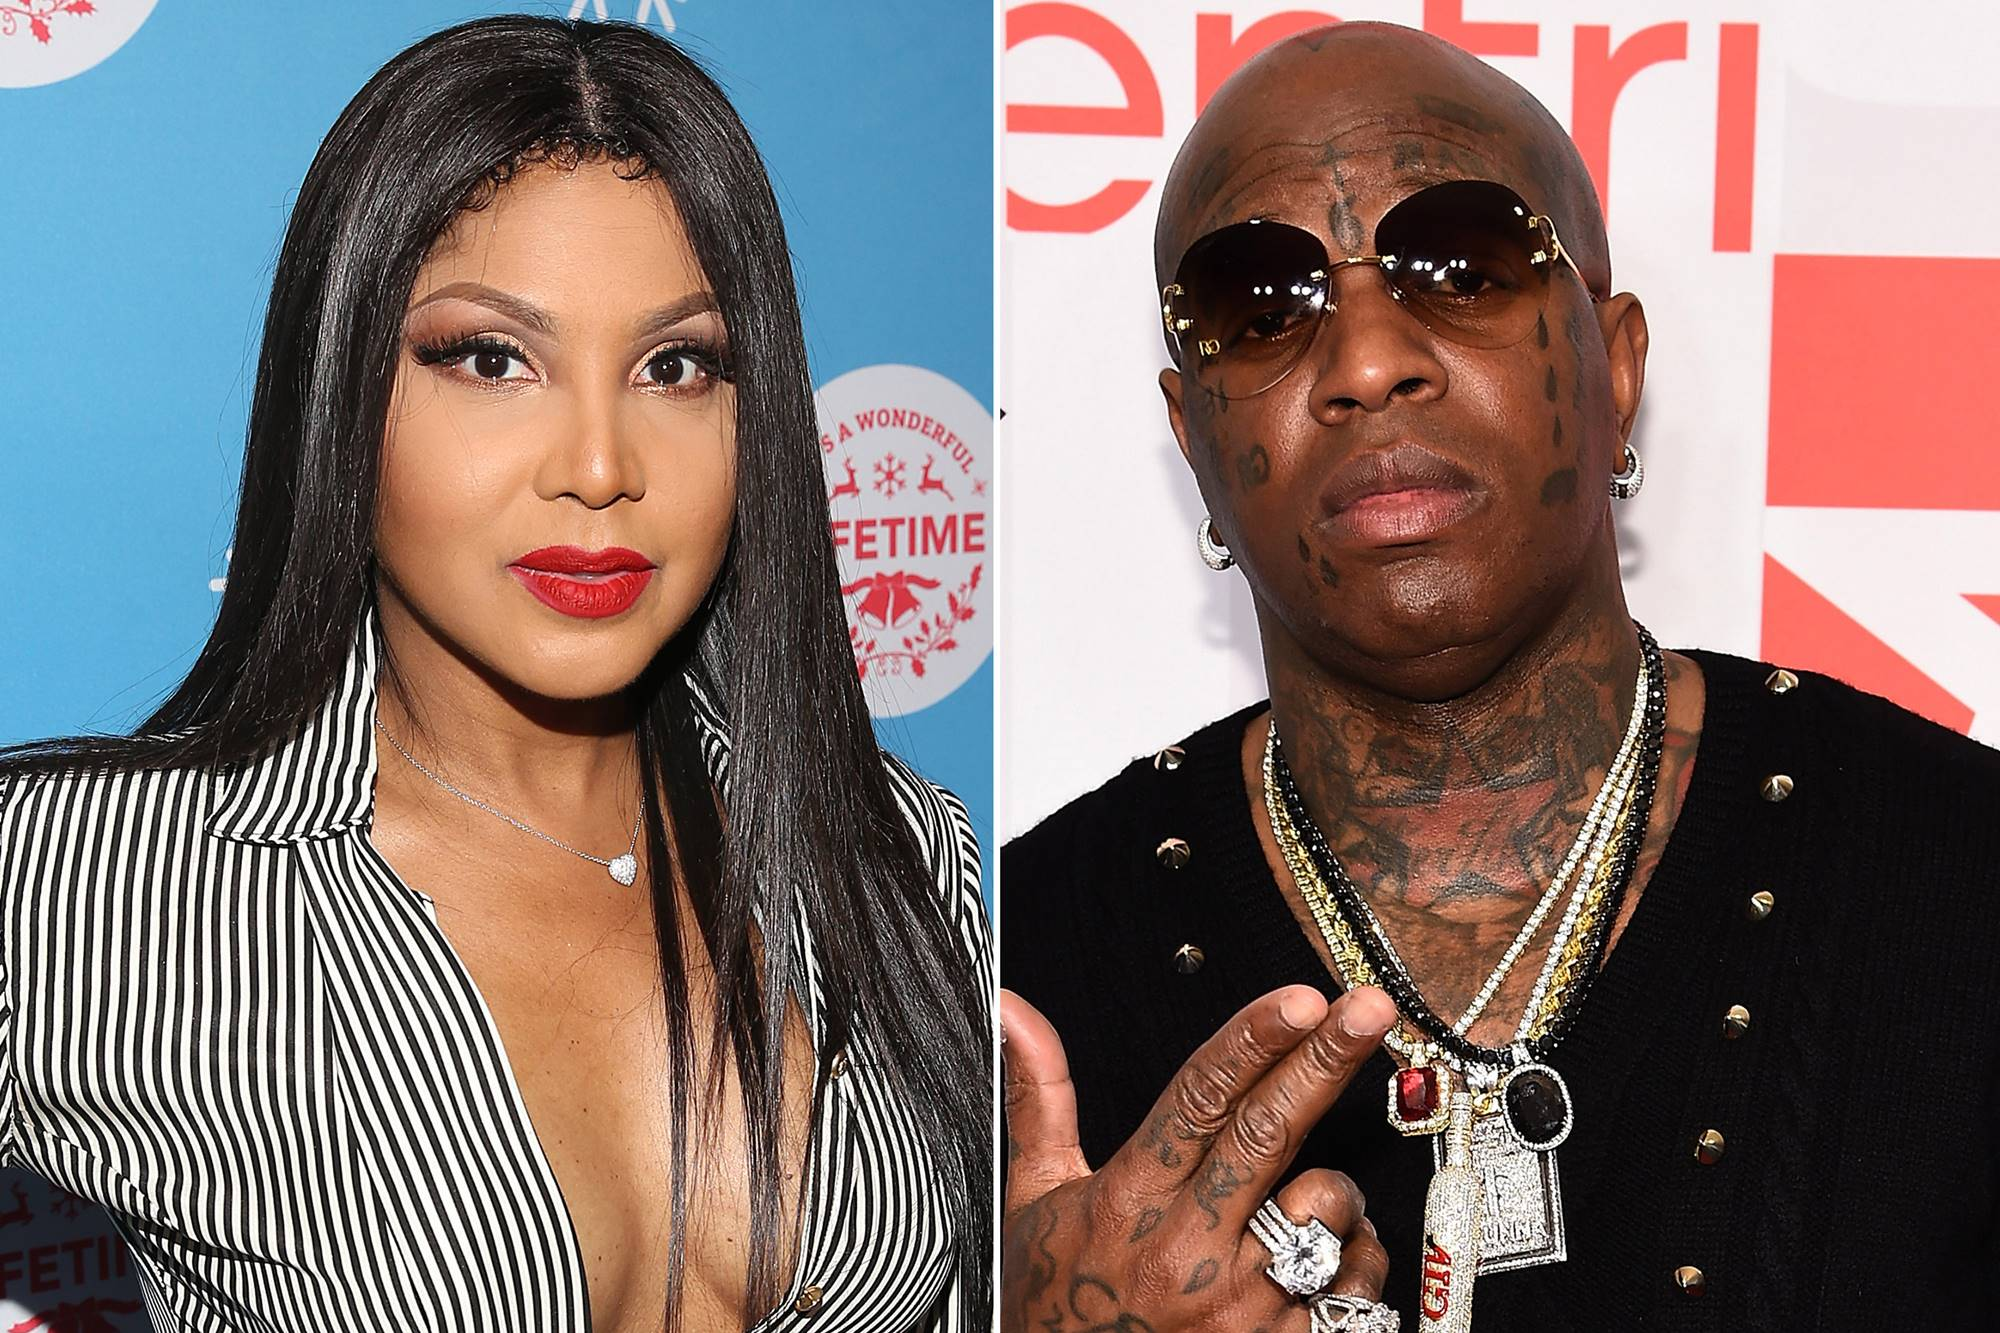 Toni Braxton Bryan Christopher 'Birdman' Williams Reconcile On Stage